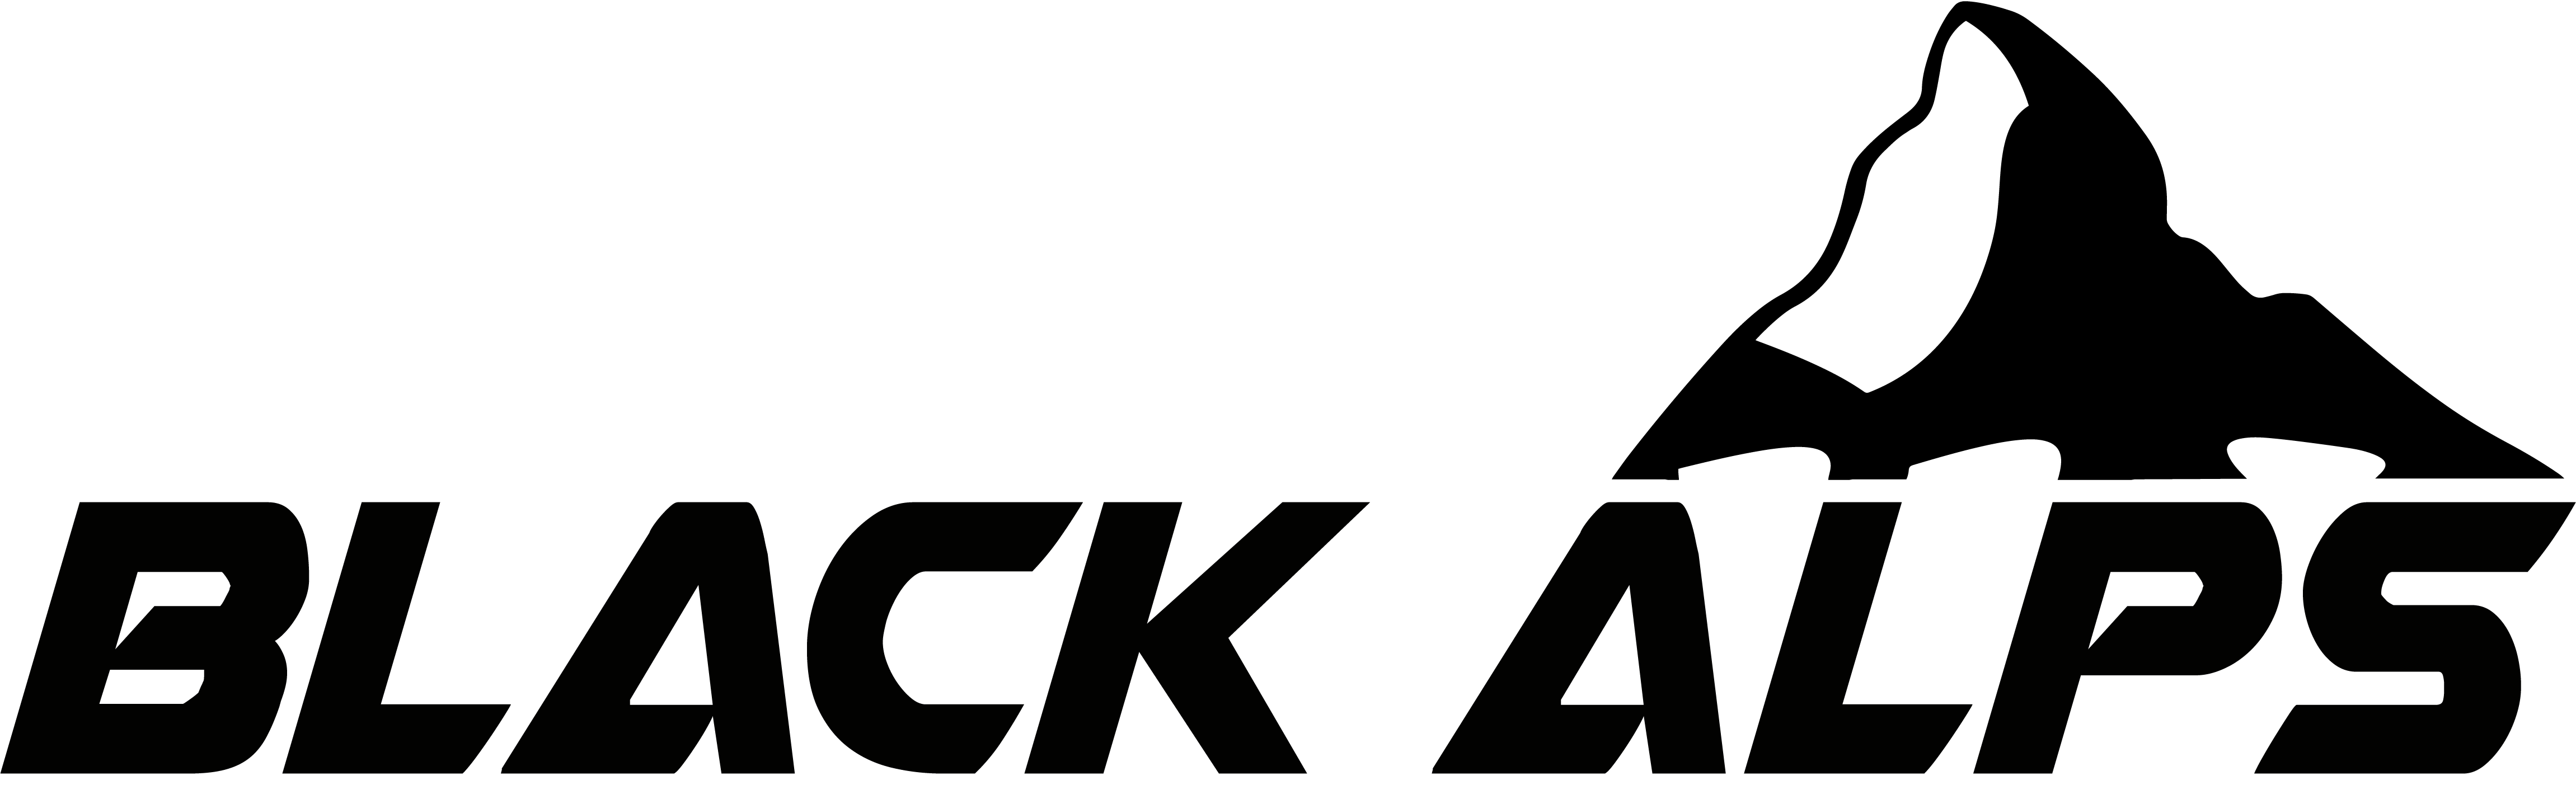 black-alps-v5-logo-black_HIGH-RES